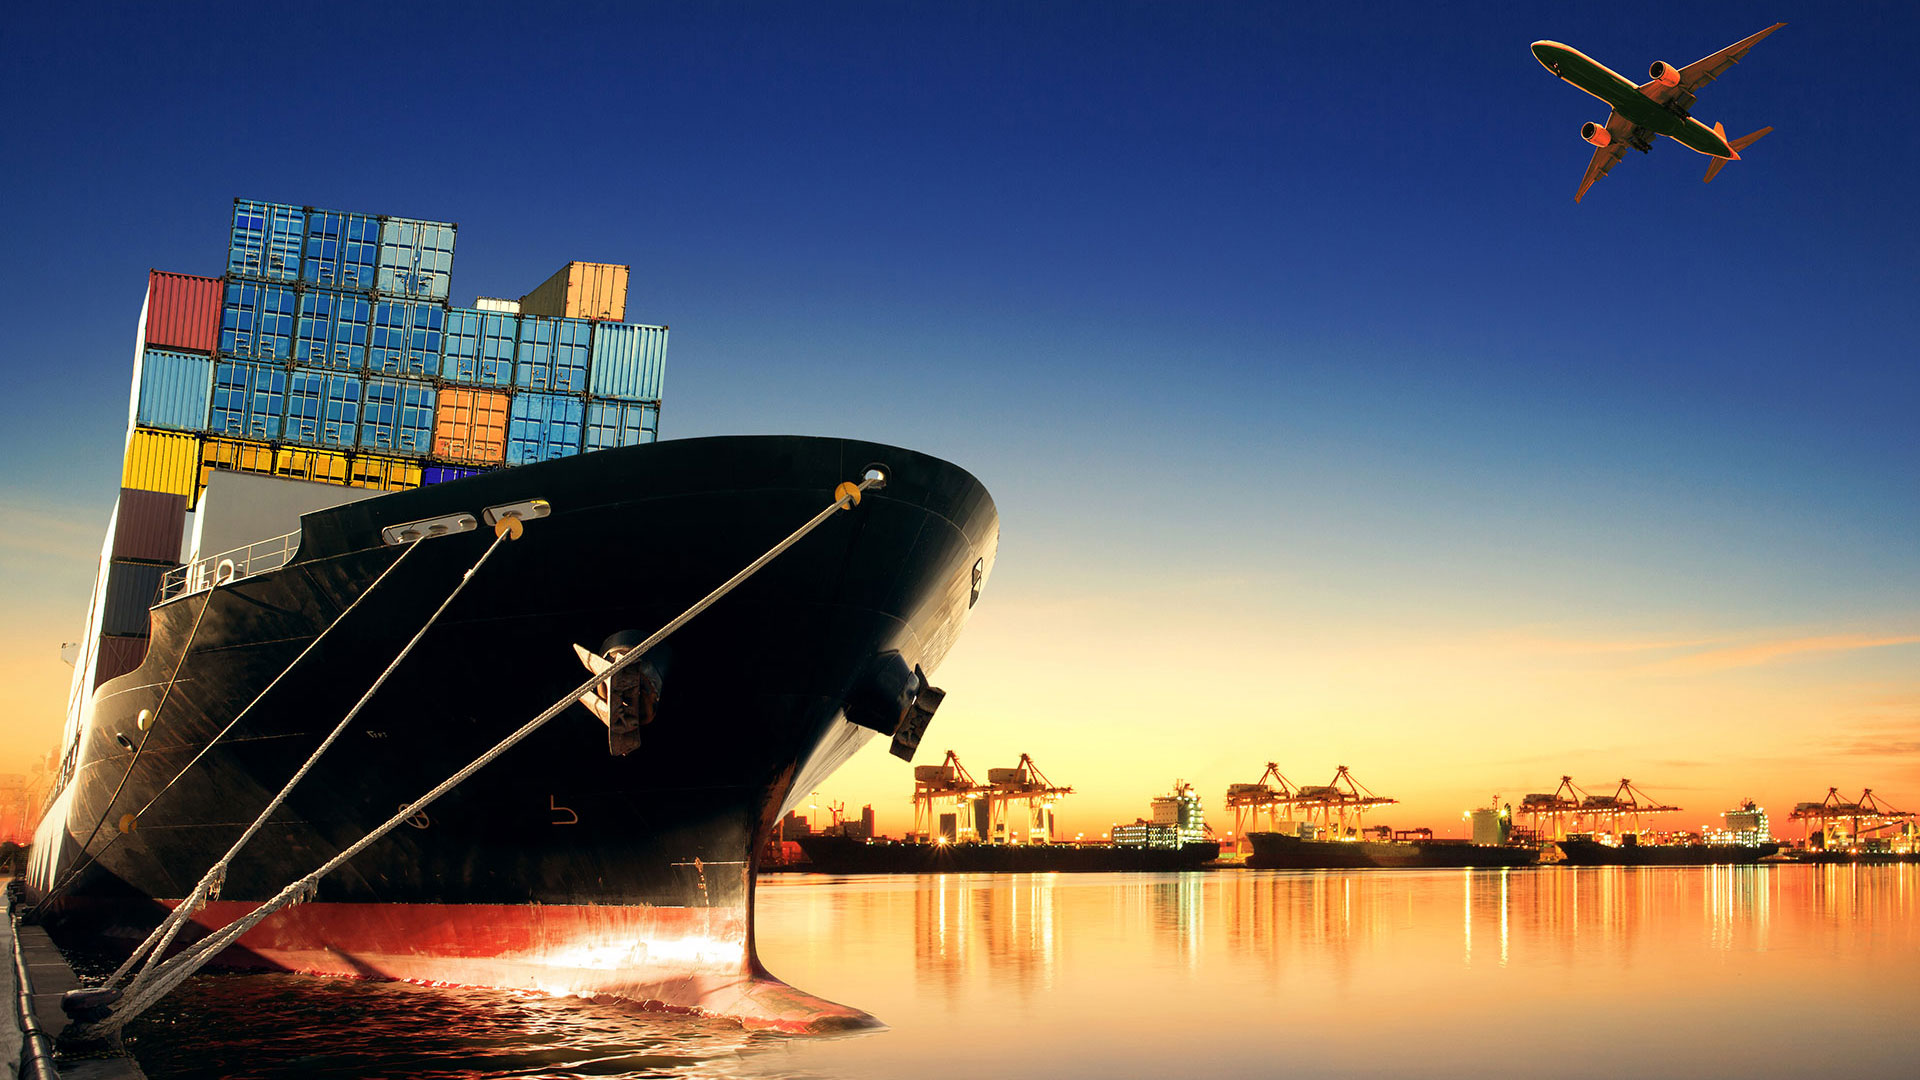 Global Strategic Holdings – Changing the world through trade, development and policy